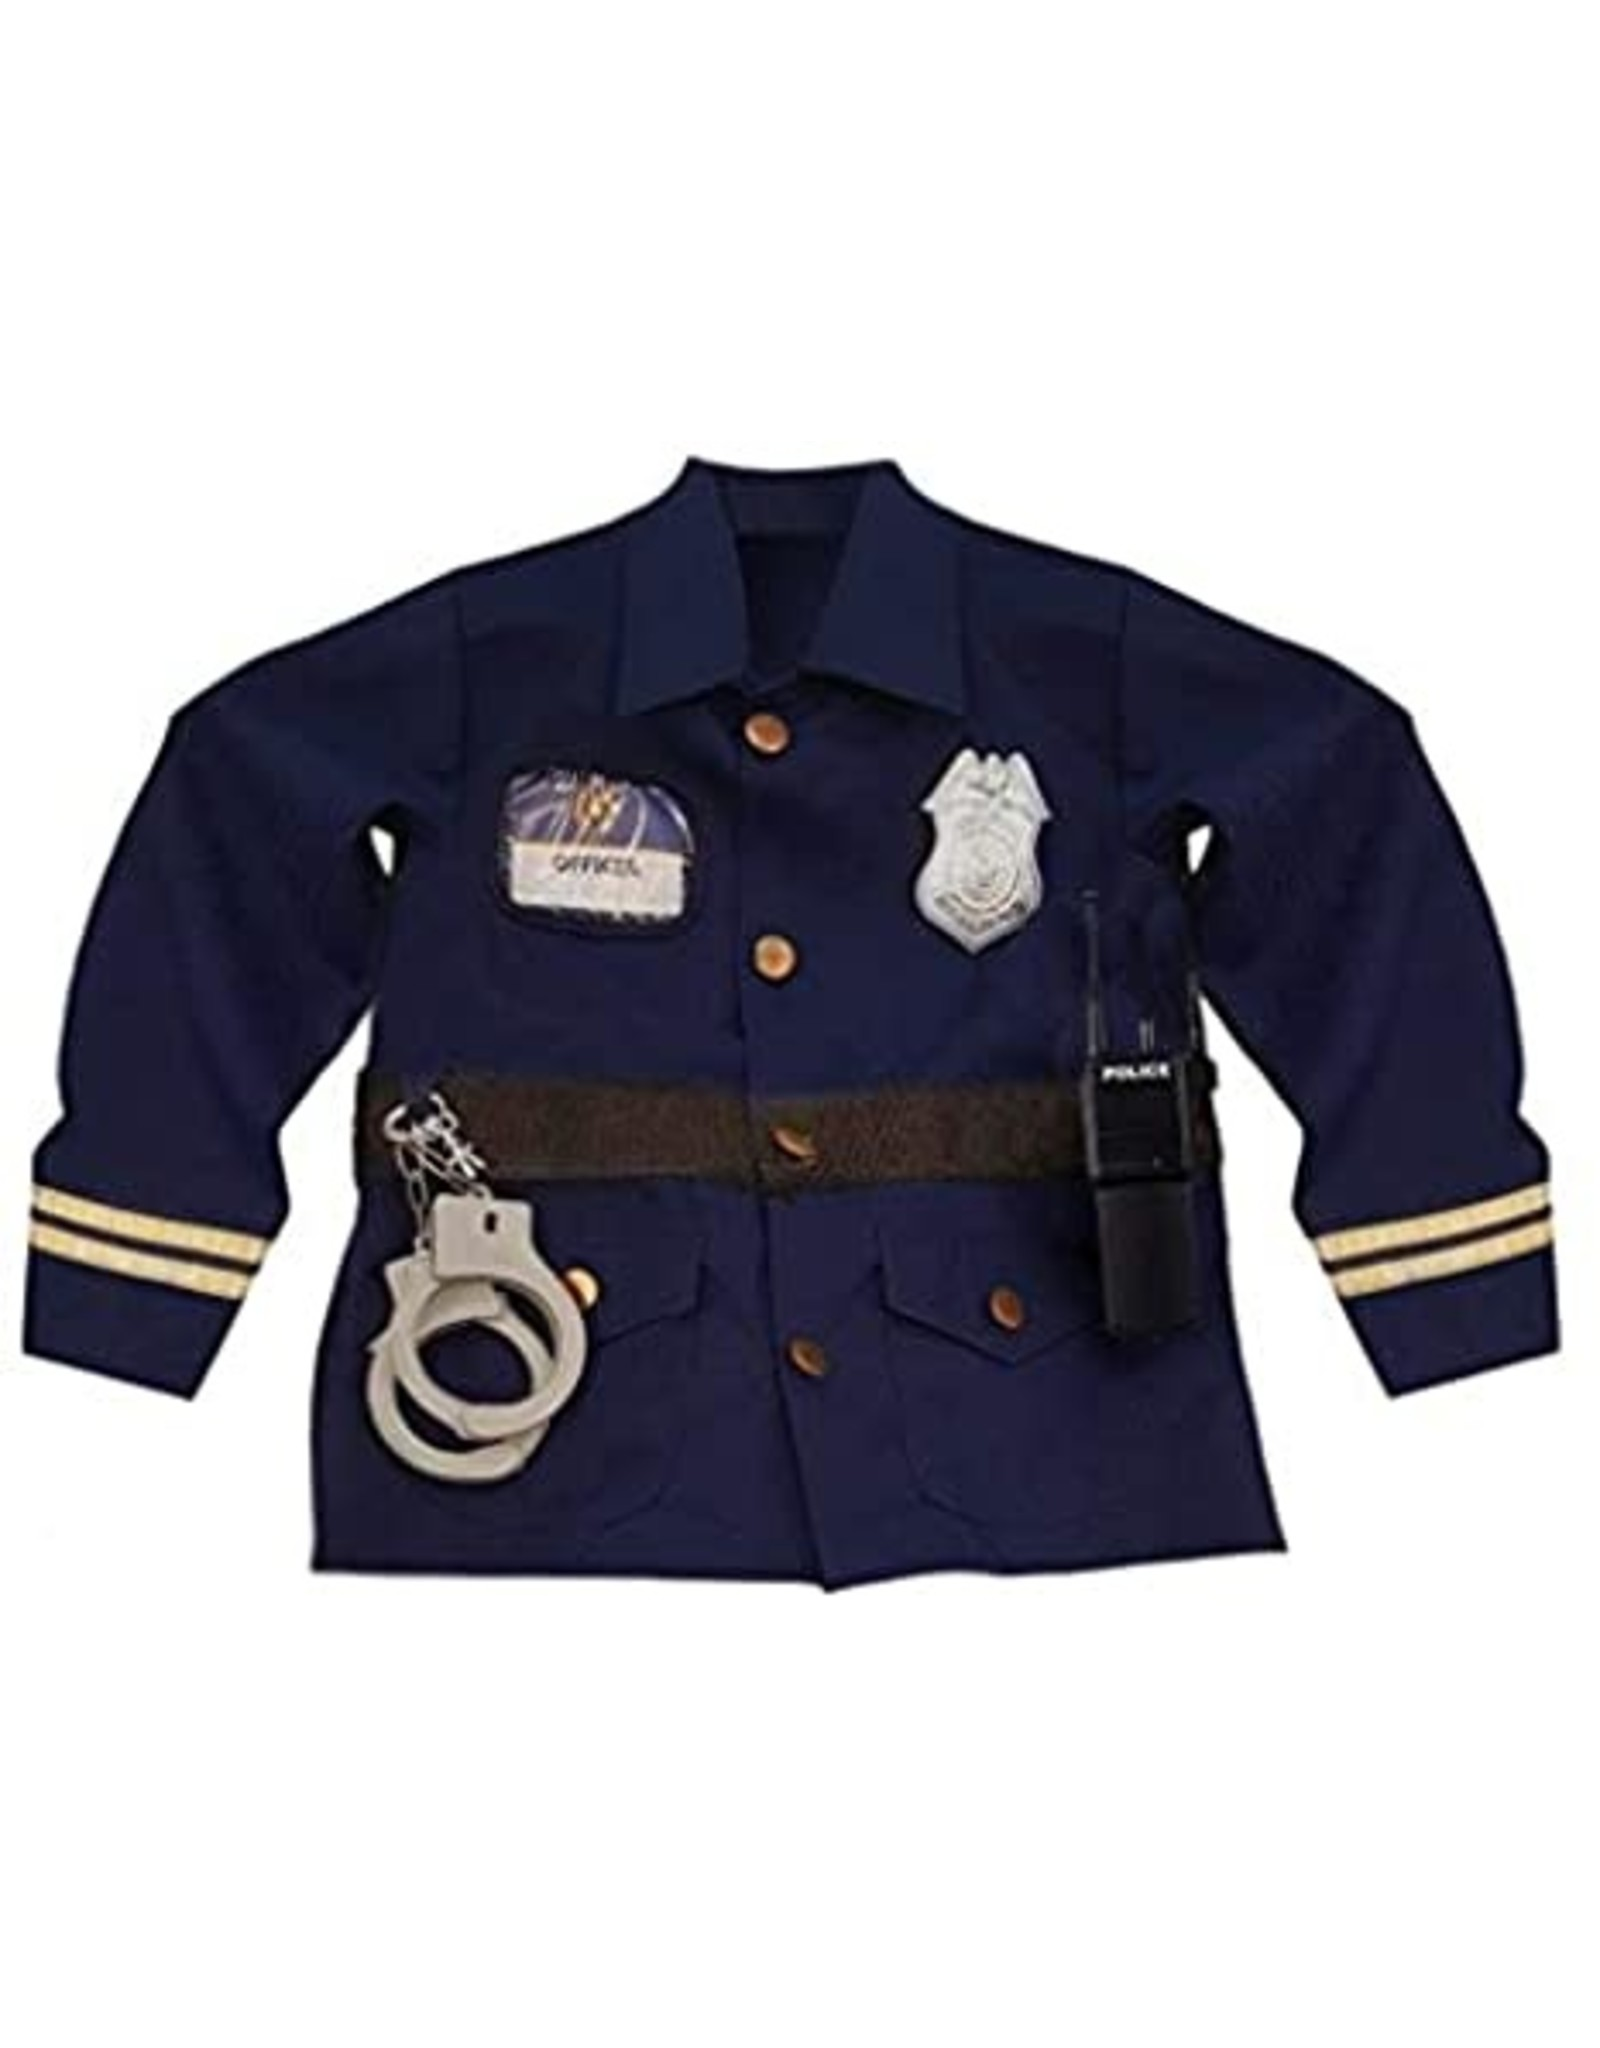 Great Pretenders Police Officer with Accessories, 5-6